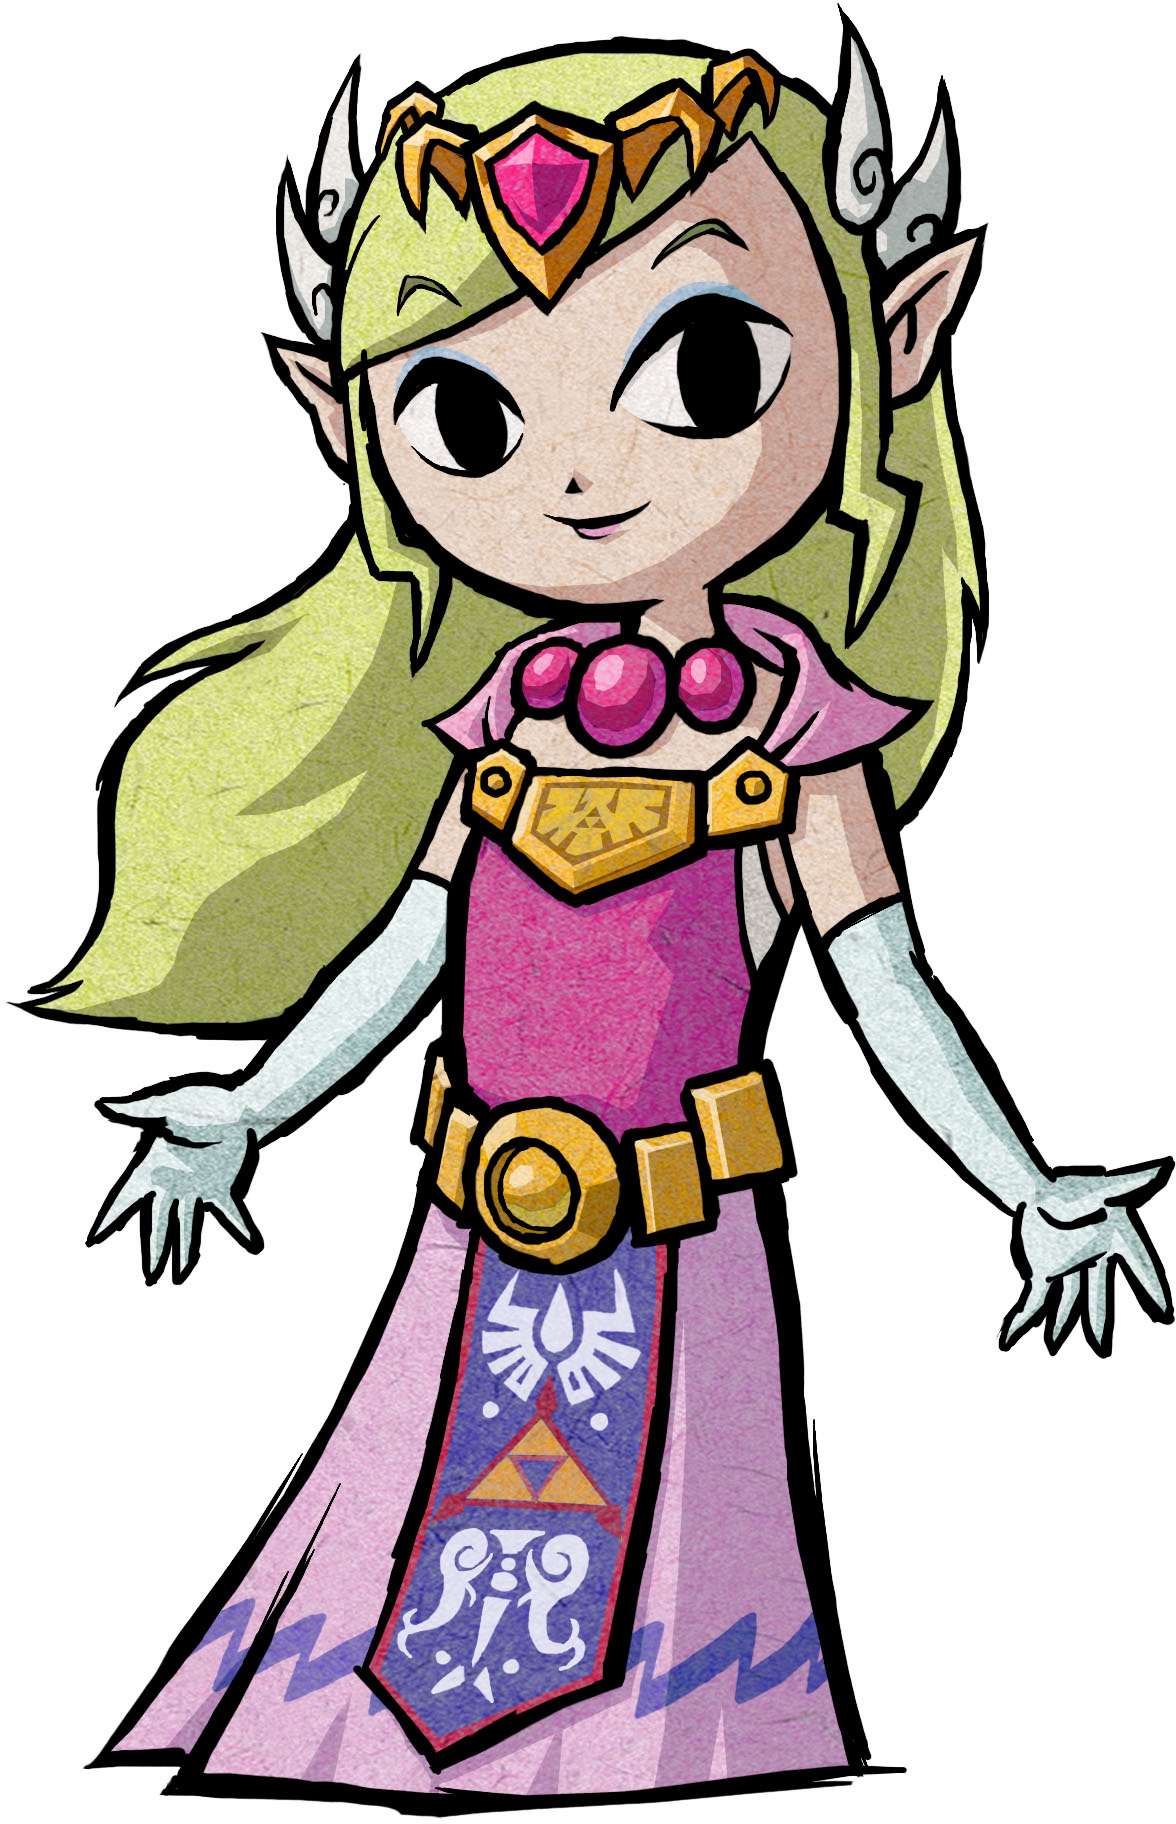 Princess Zelda design from The Wind Waker | Art - The Legend of ...